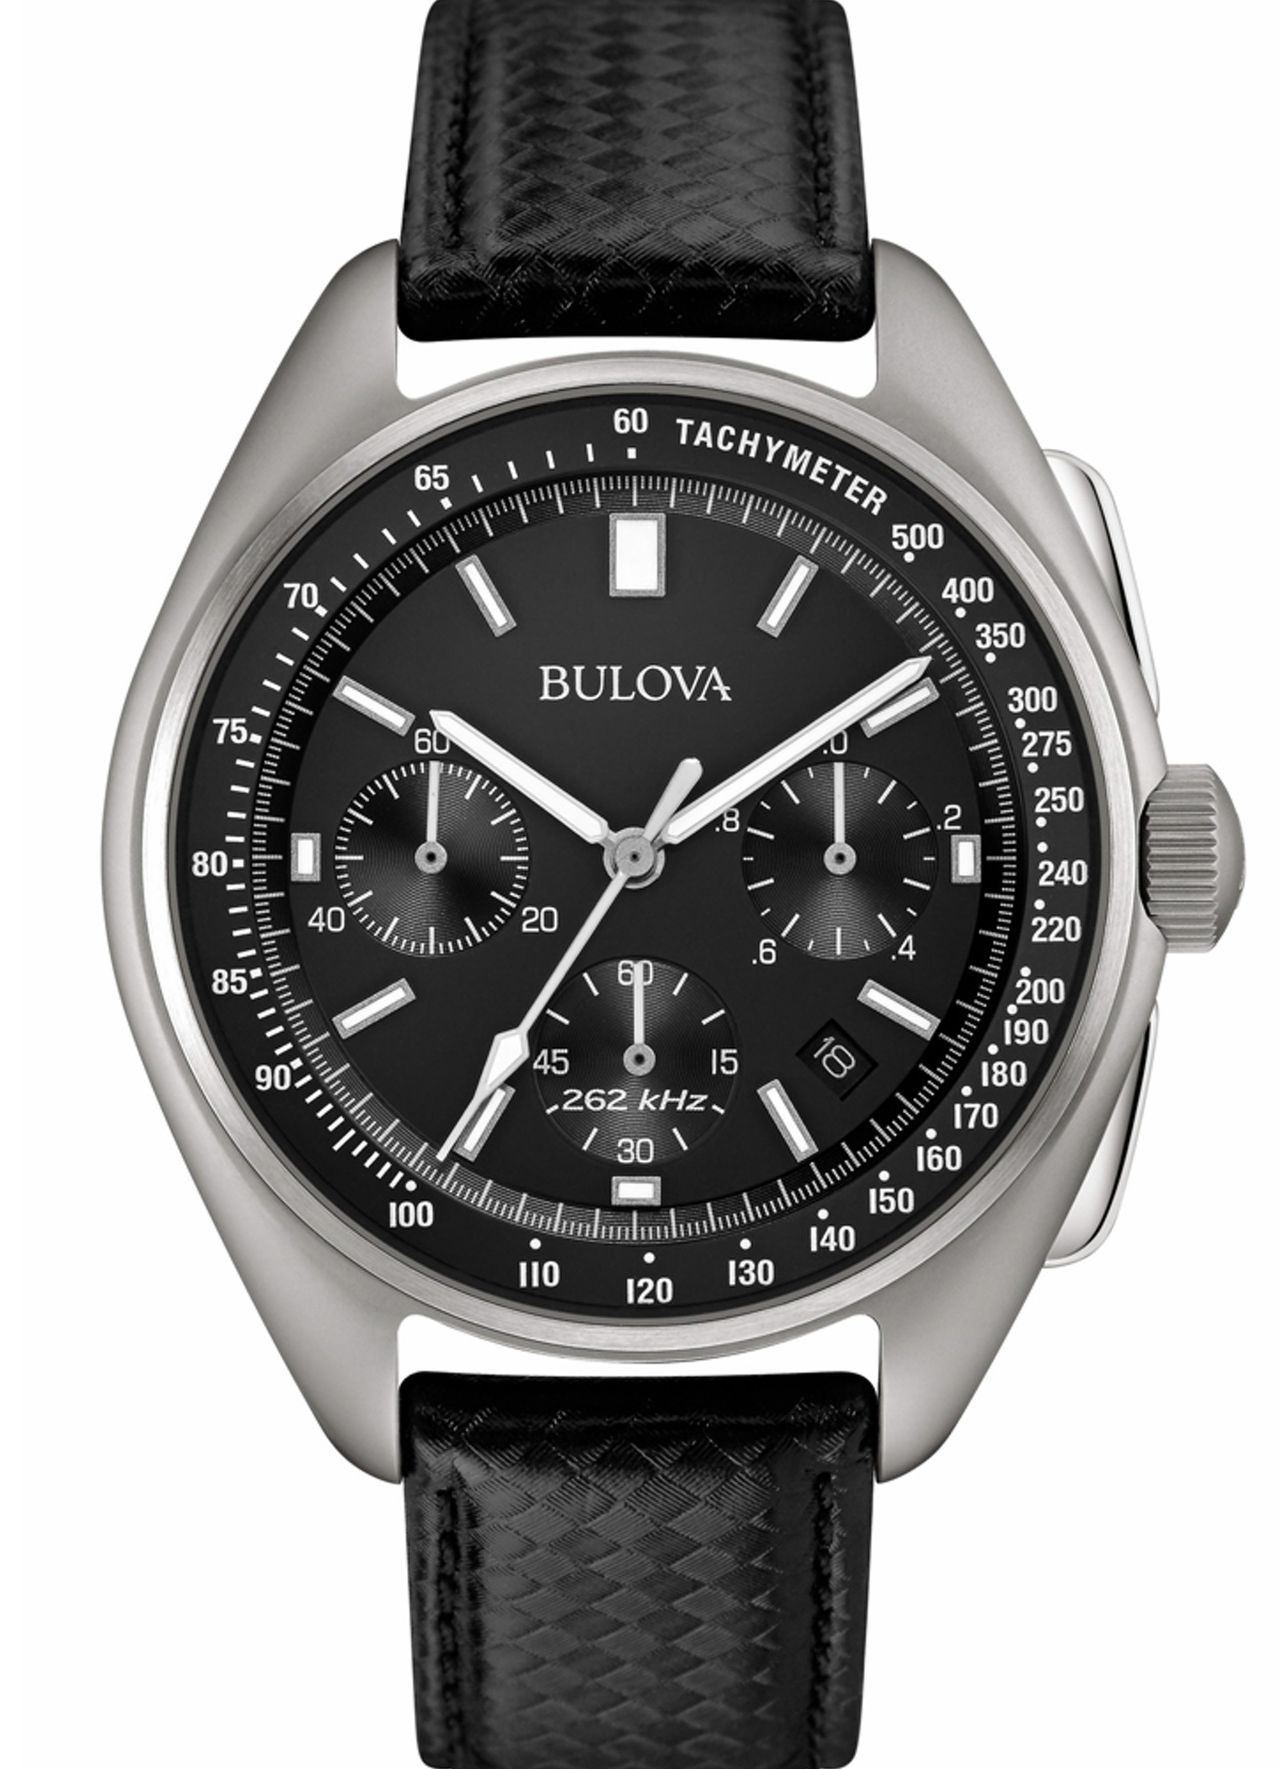 Bulova-Special-Edition-Moon-Chronograph-soldat